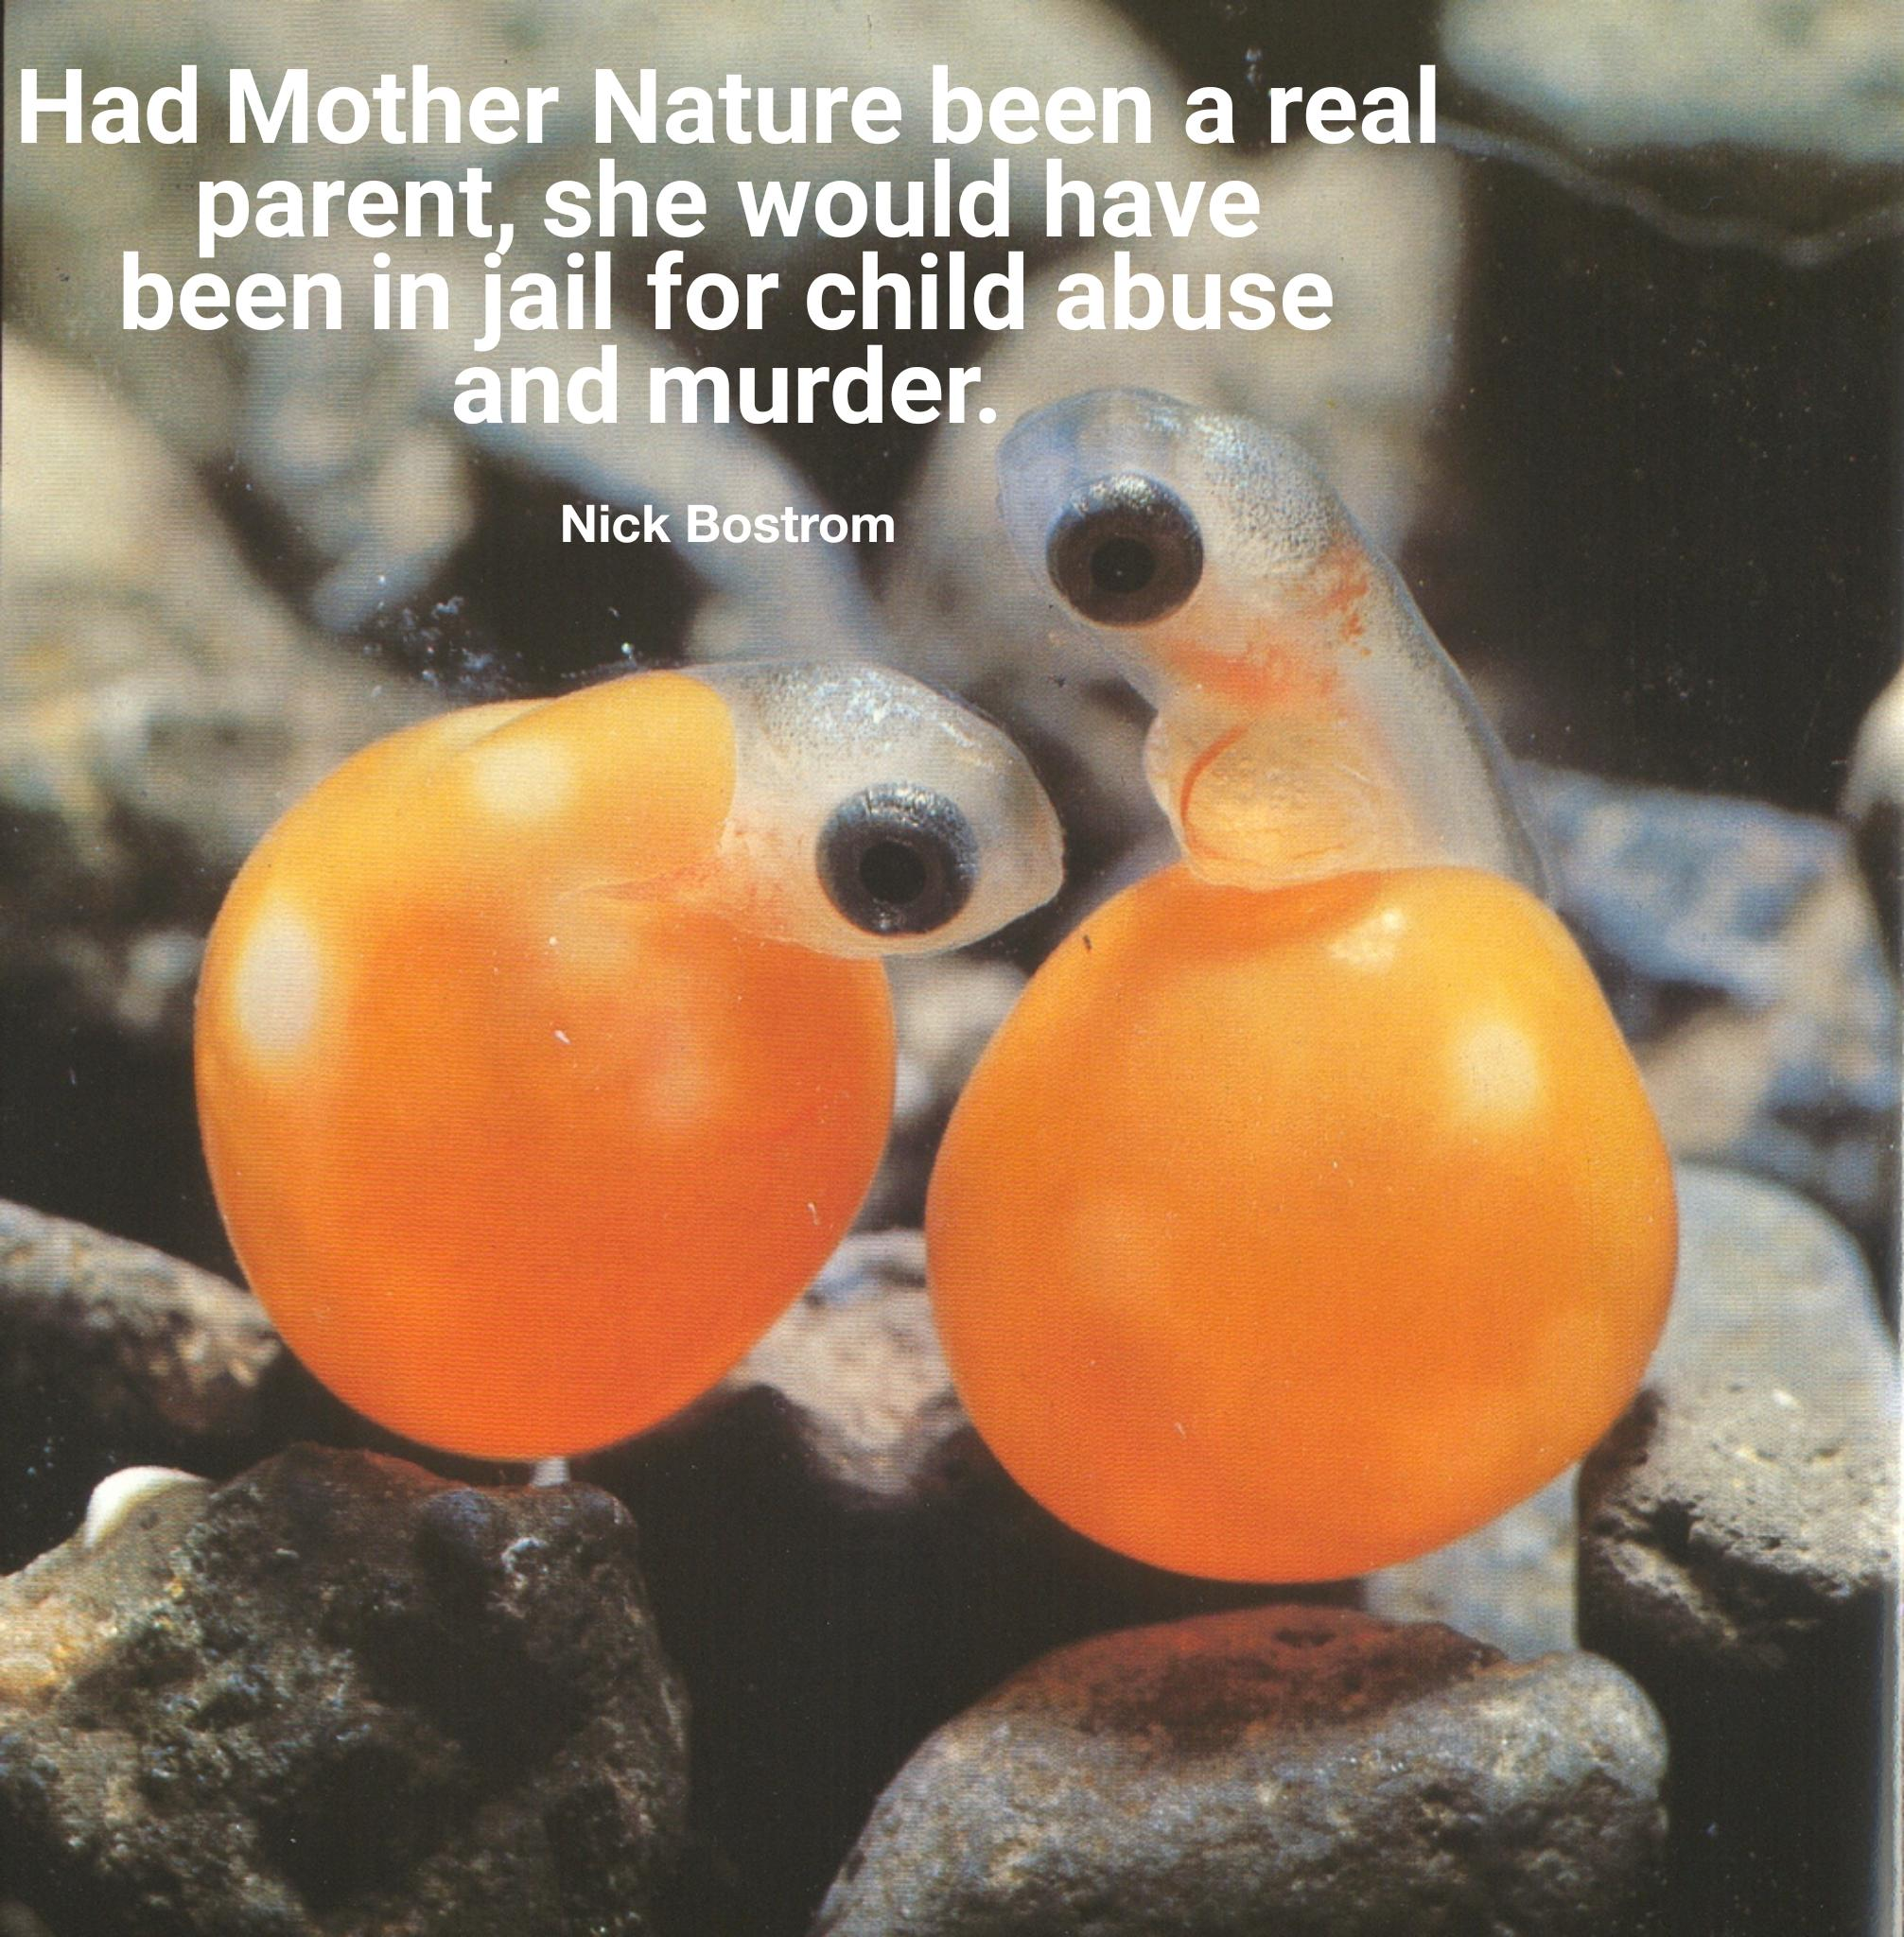 """Had Mother Nature been a real parent, she would have been in jail for child abuse and murder."" -Nick Bostrom [2013×2048]"